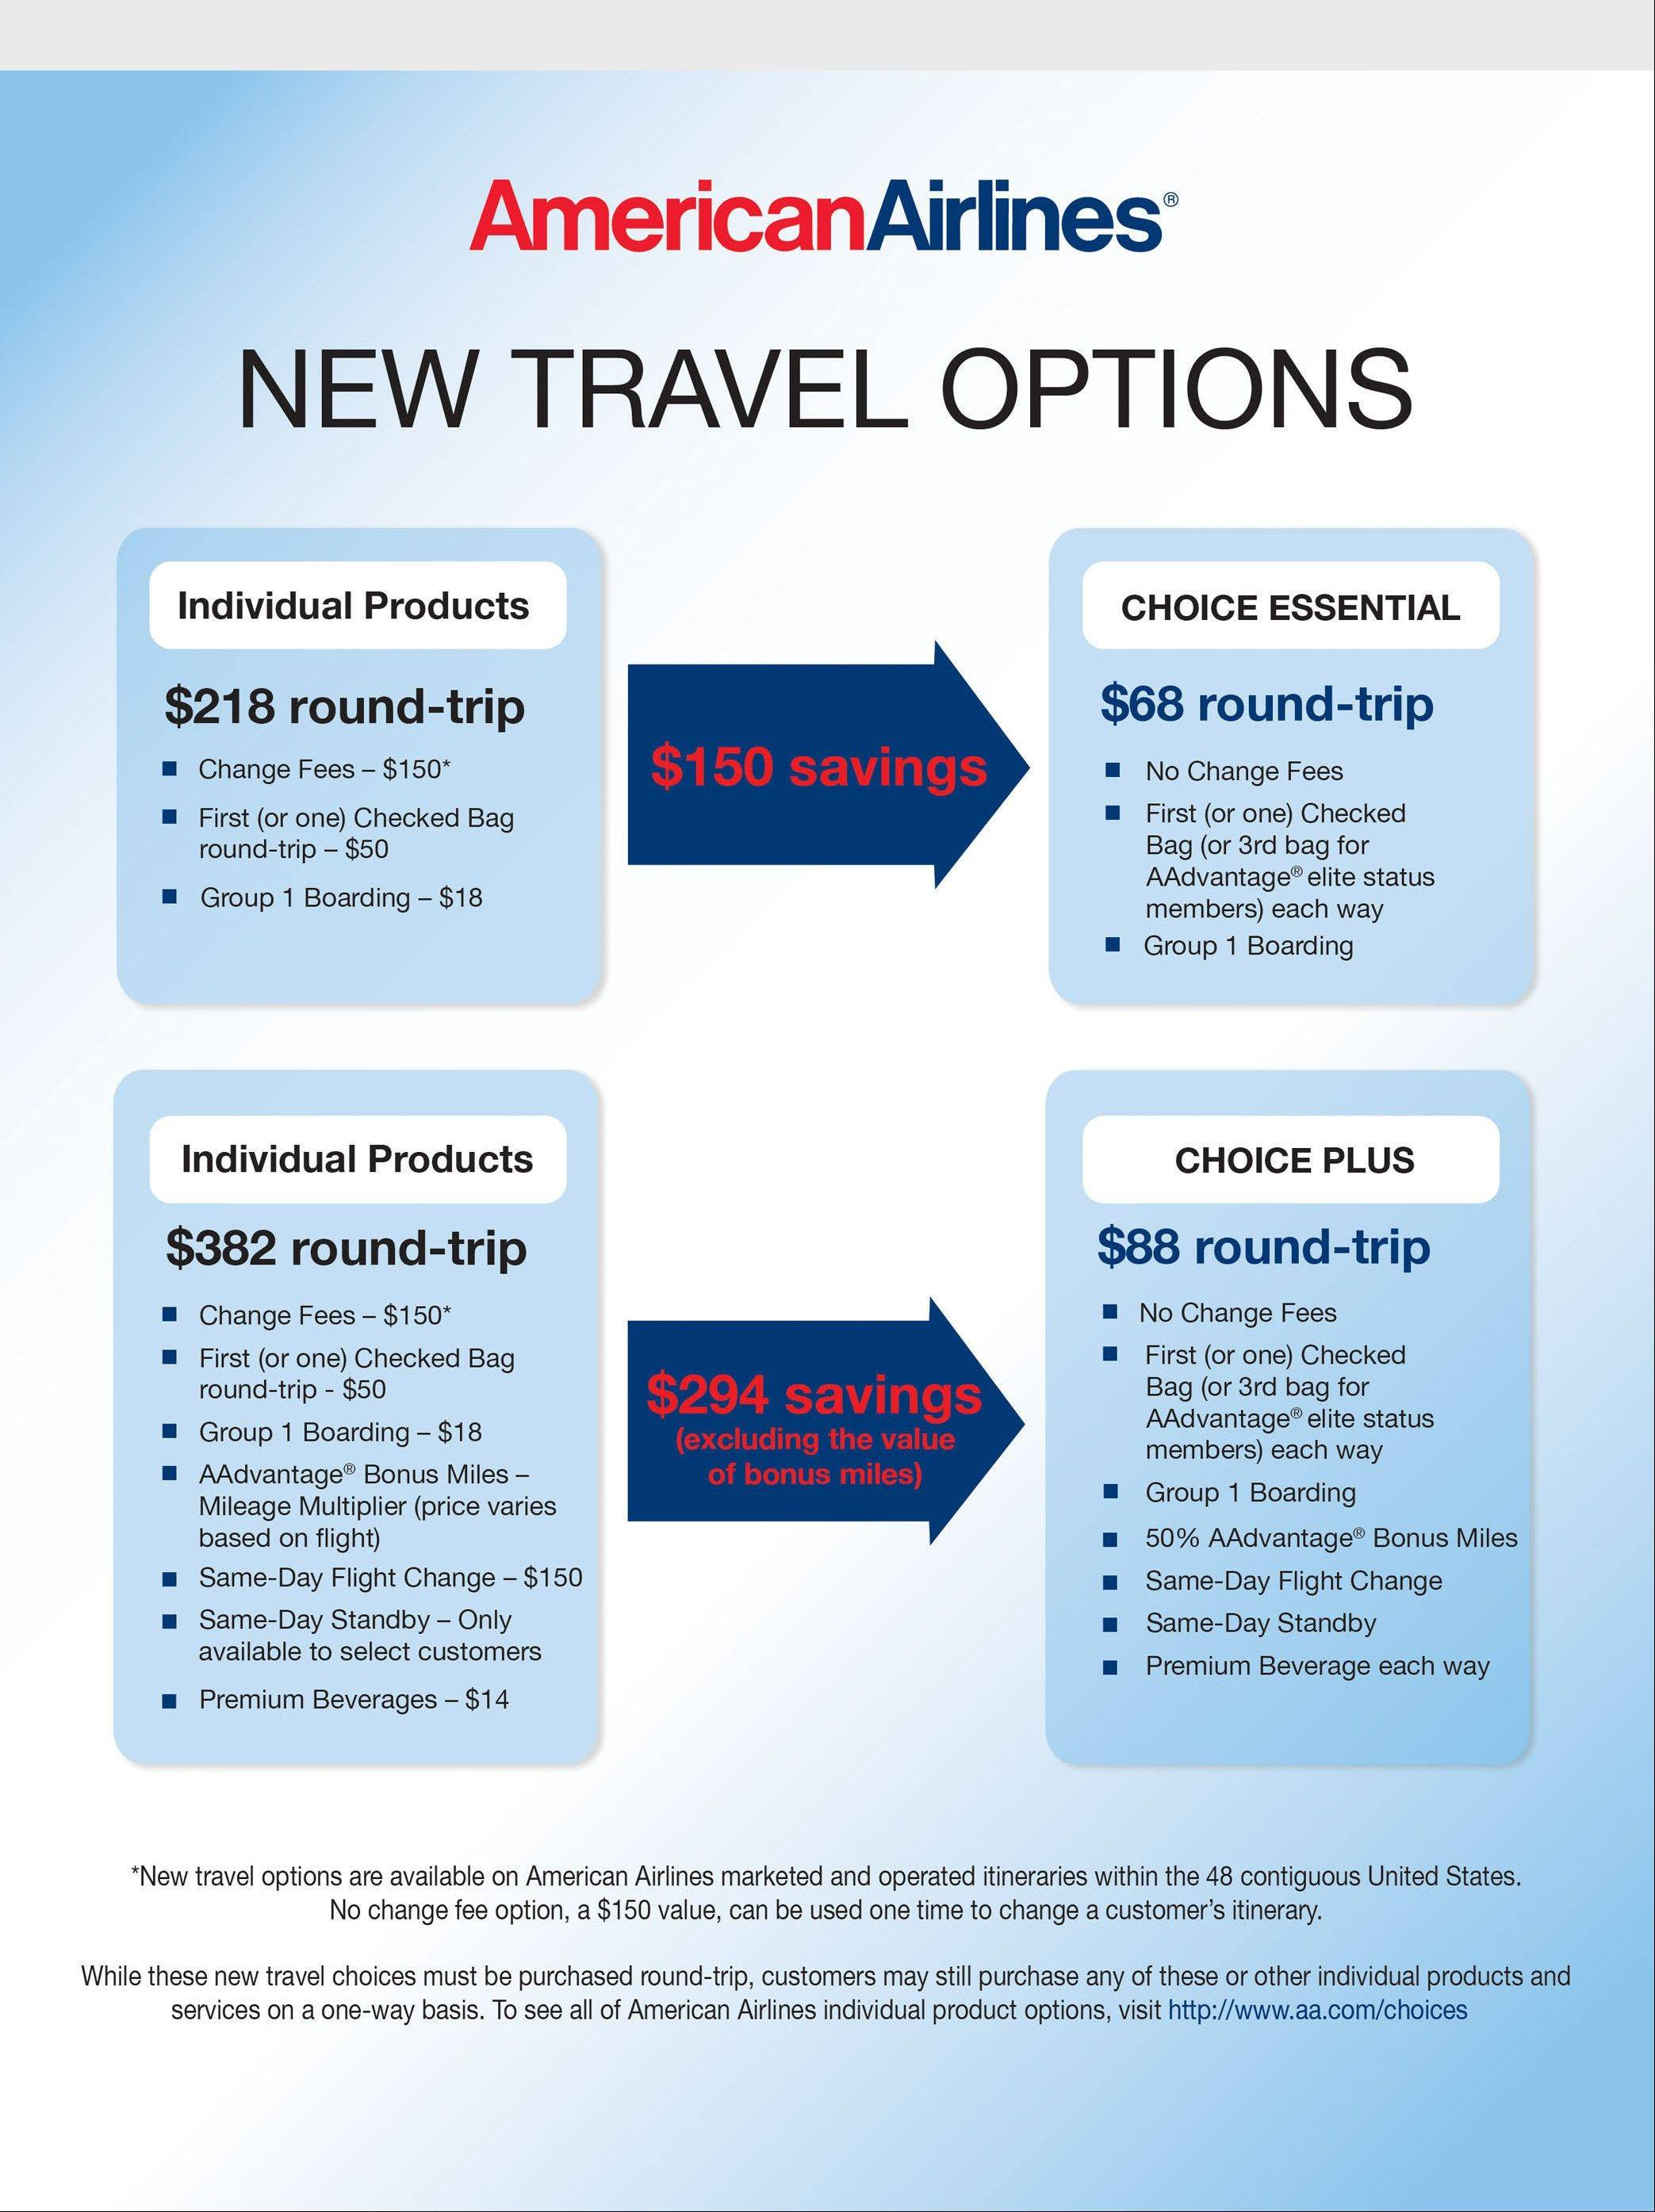 American Airlines rolls out new fare structure